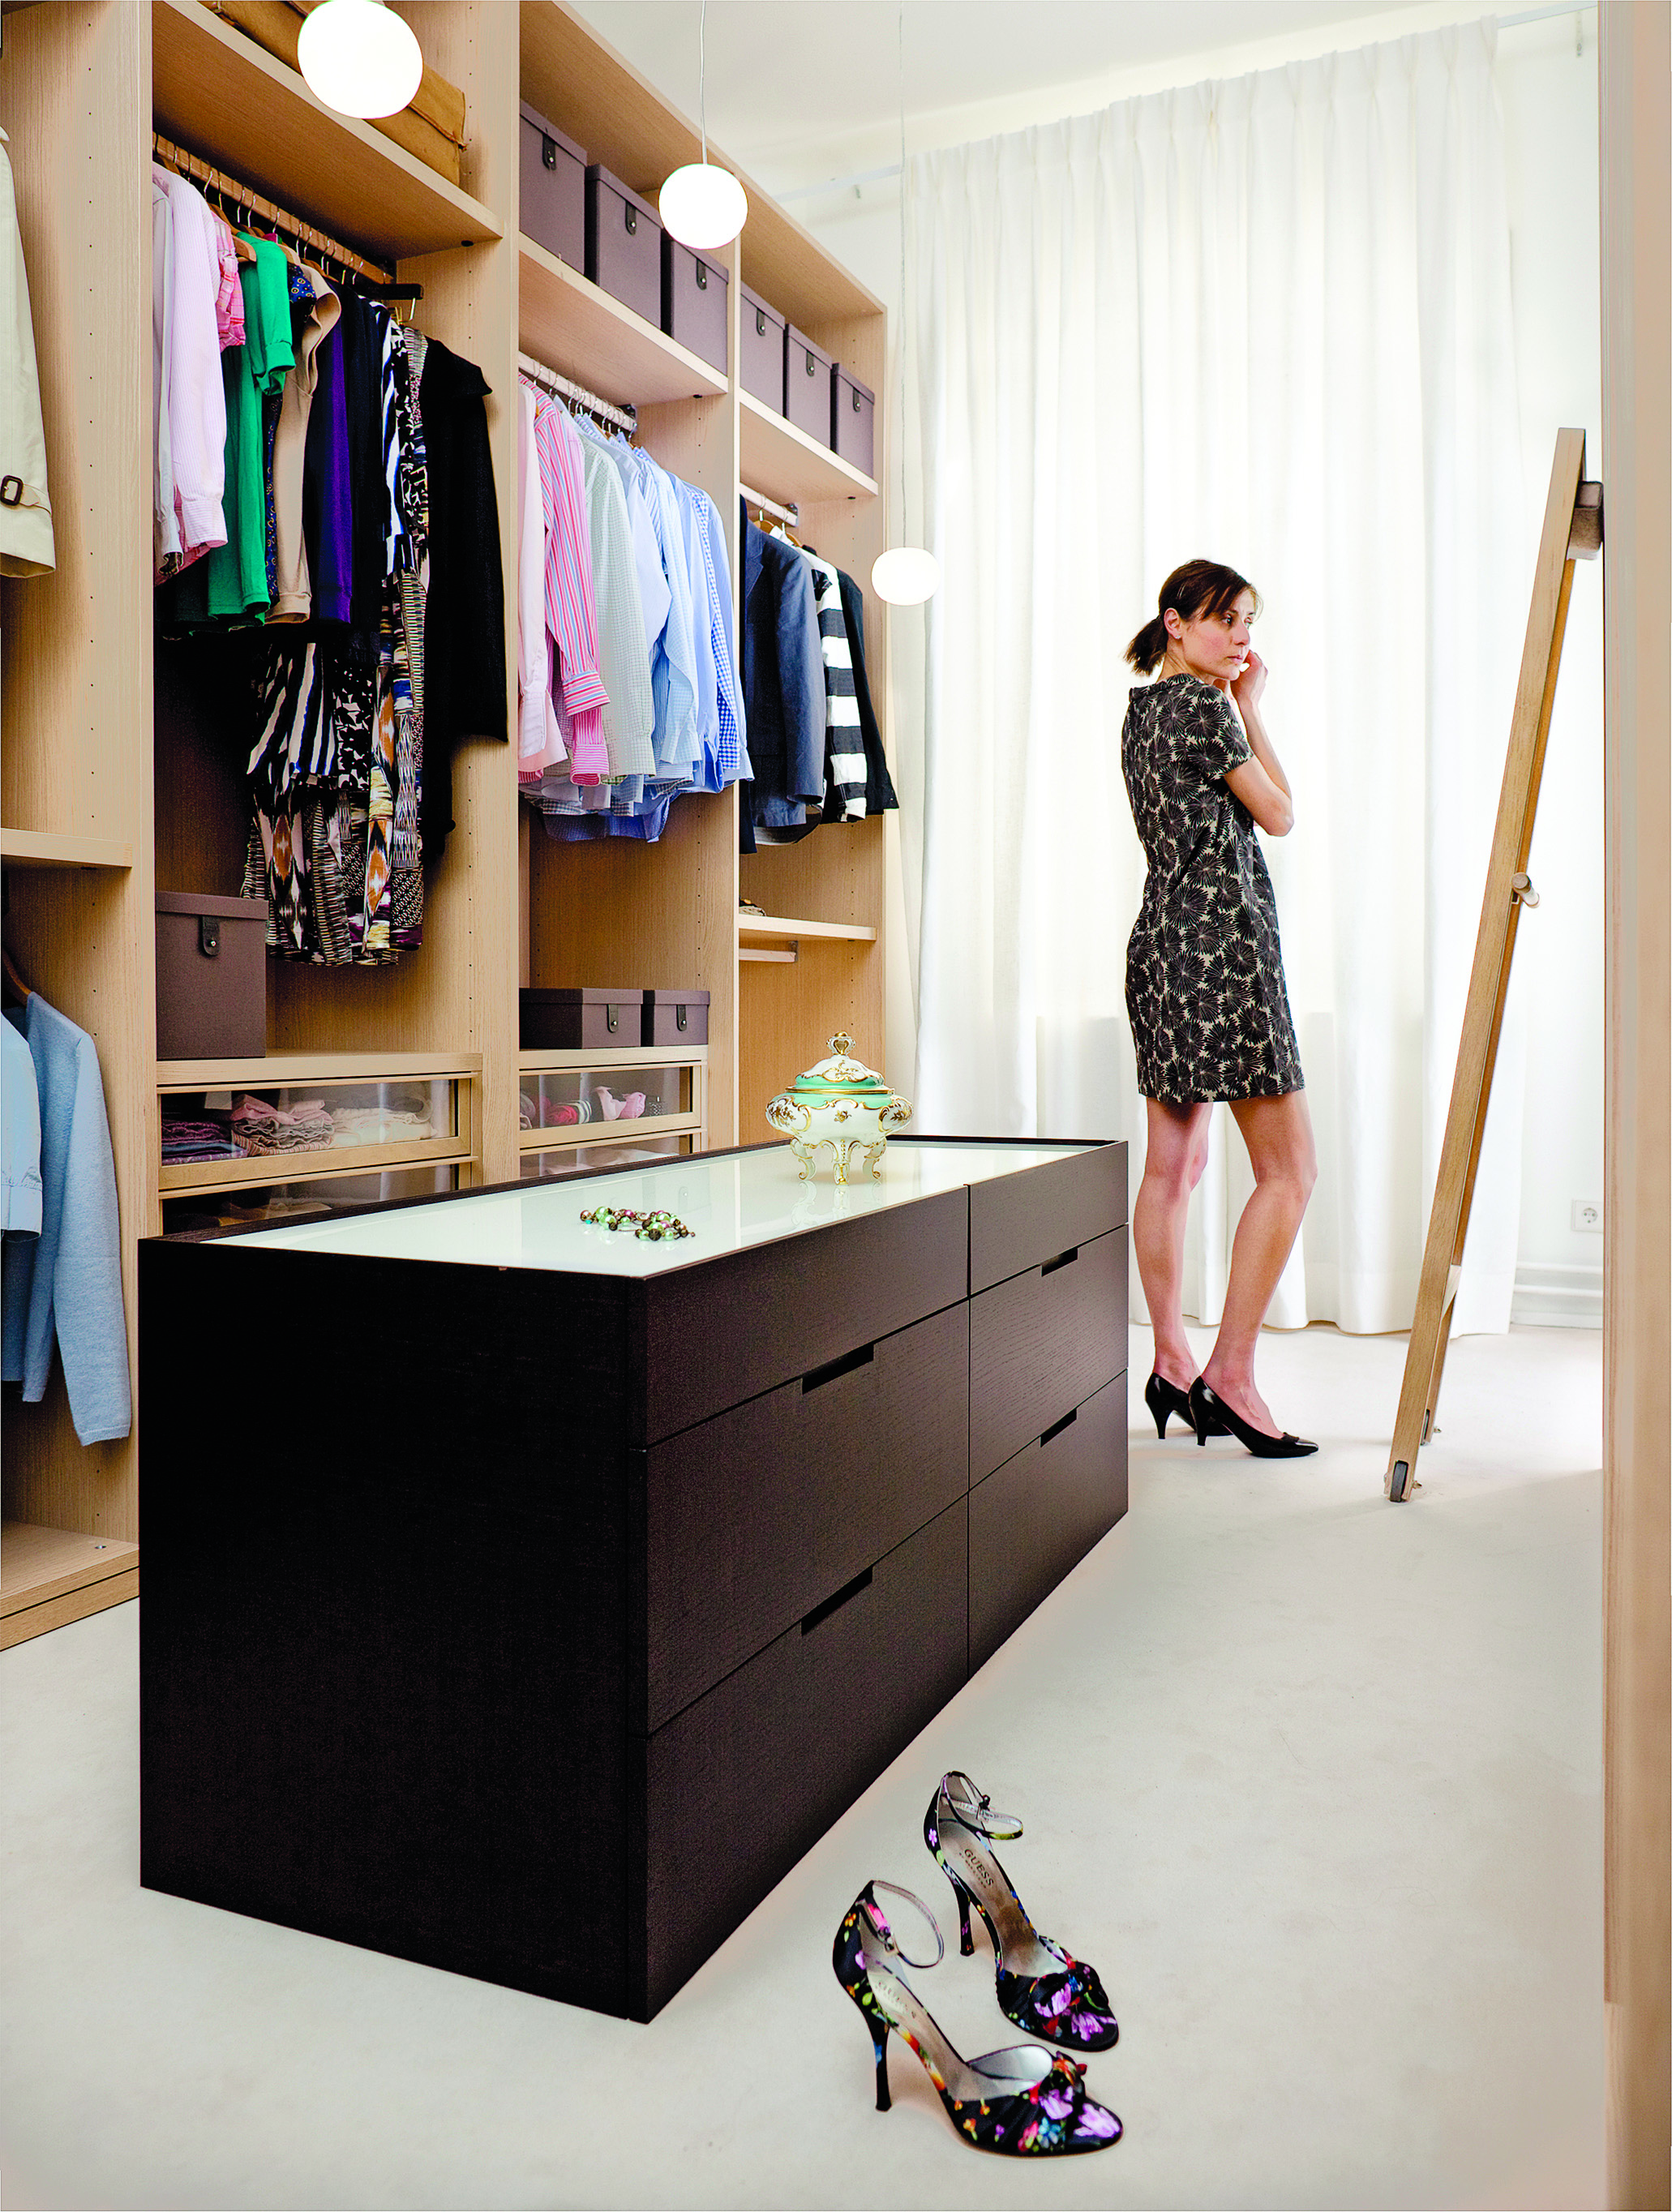 Woman trying clothes in walk-in wardrobe